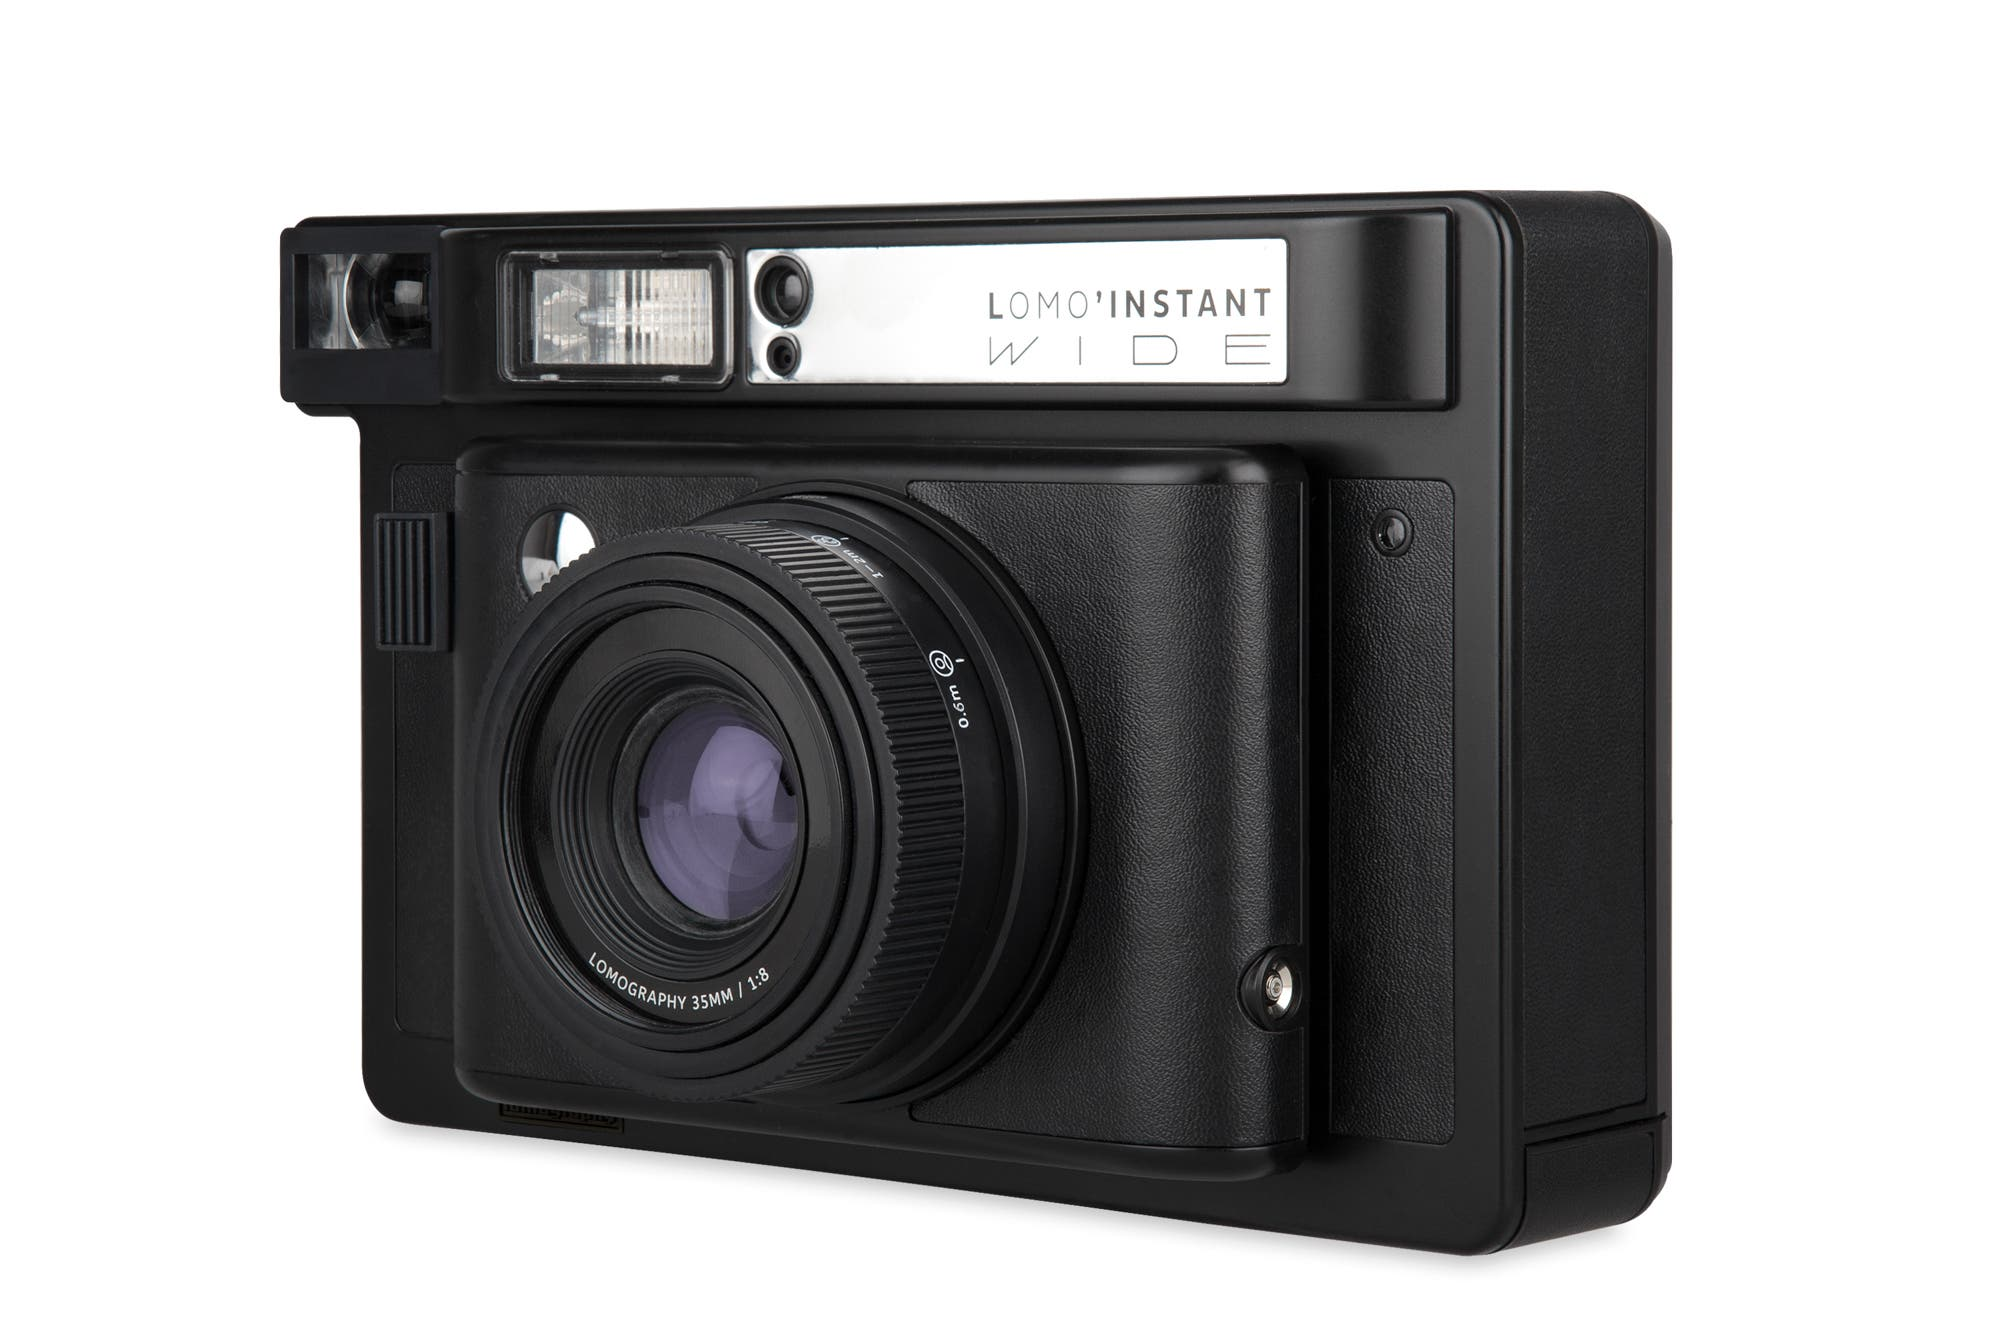 the lomography lomo 39 instant wide shoots fujifilm instax wide film. Black Bedroom Furniture Sets. Home Design Ideas